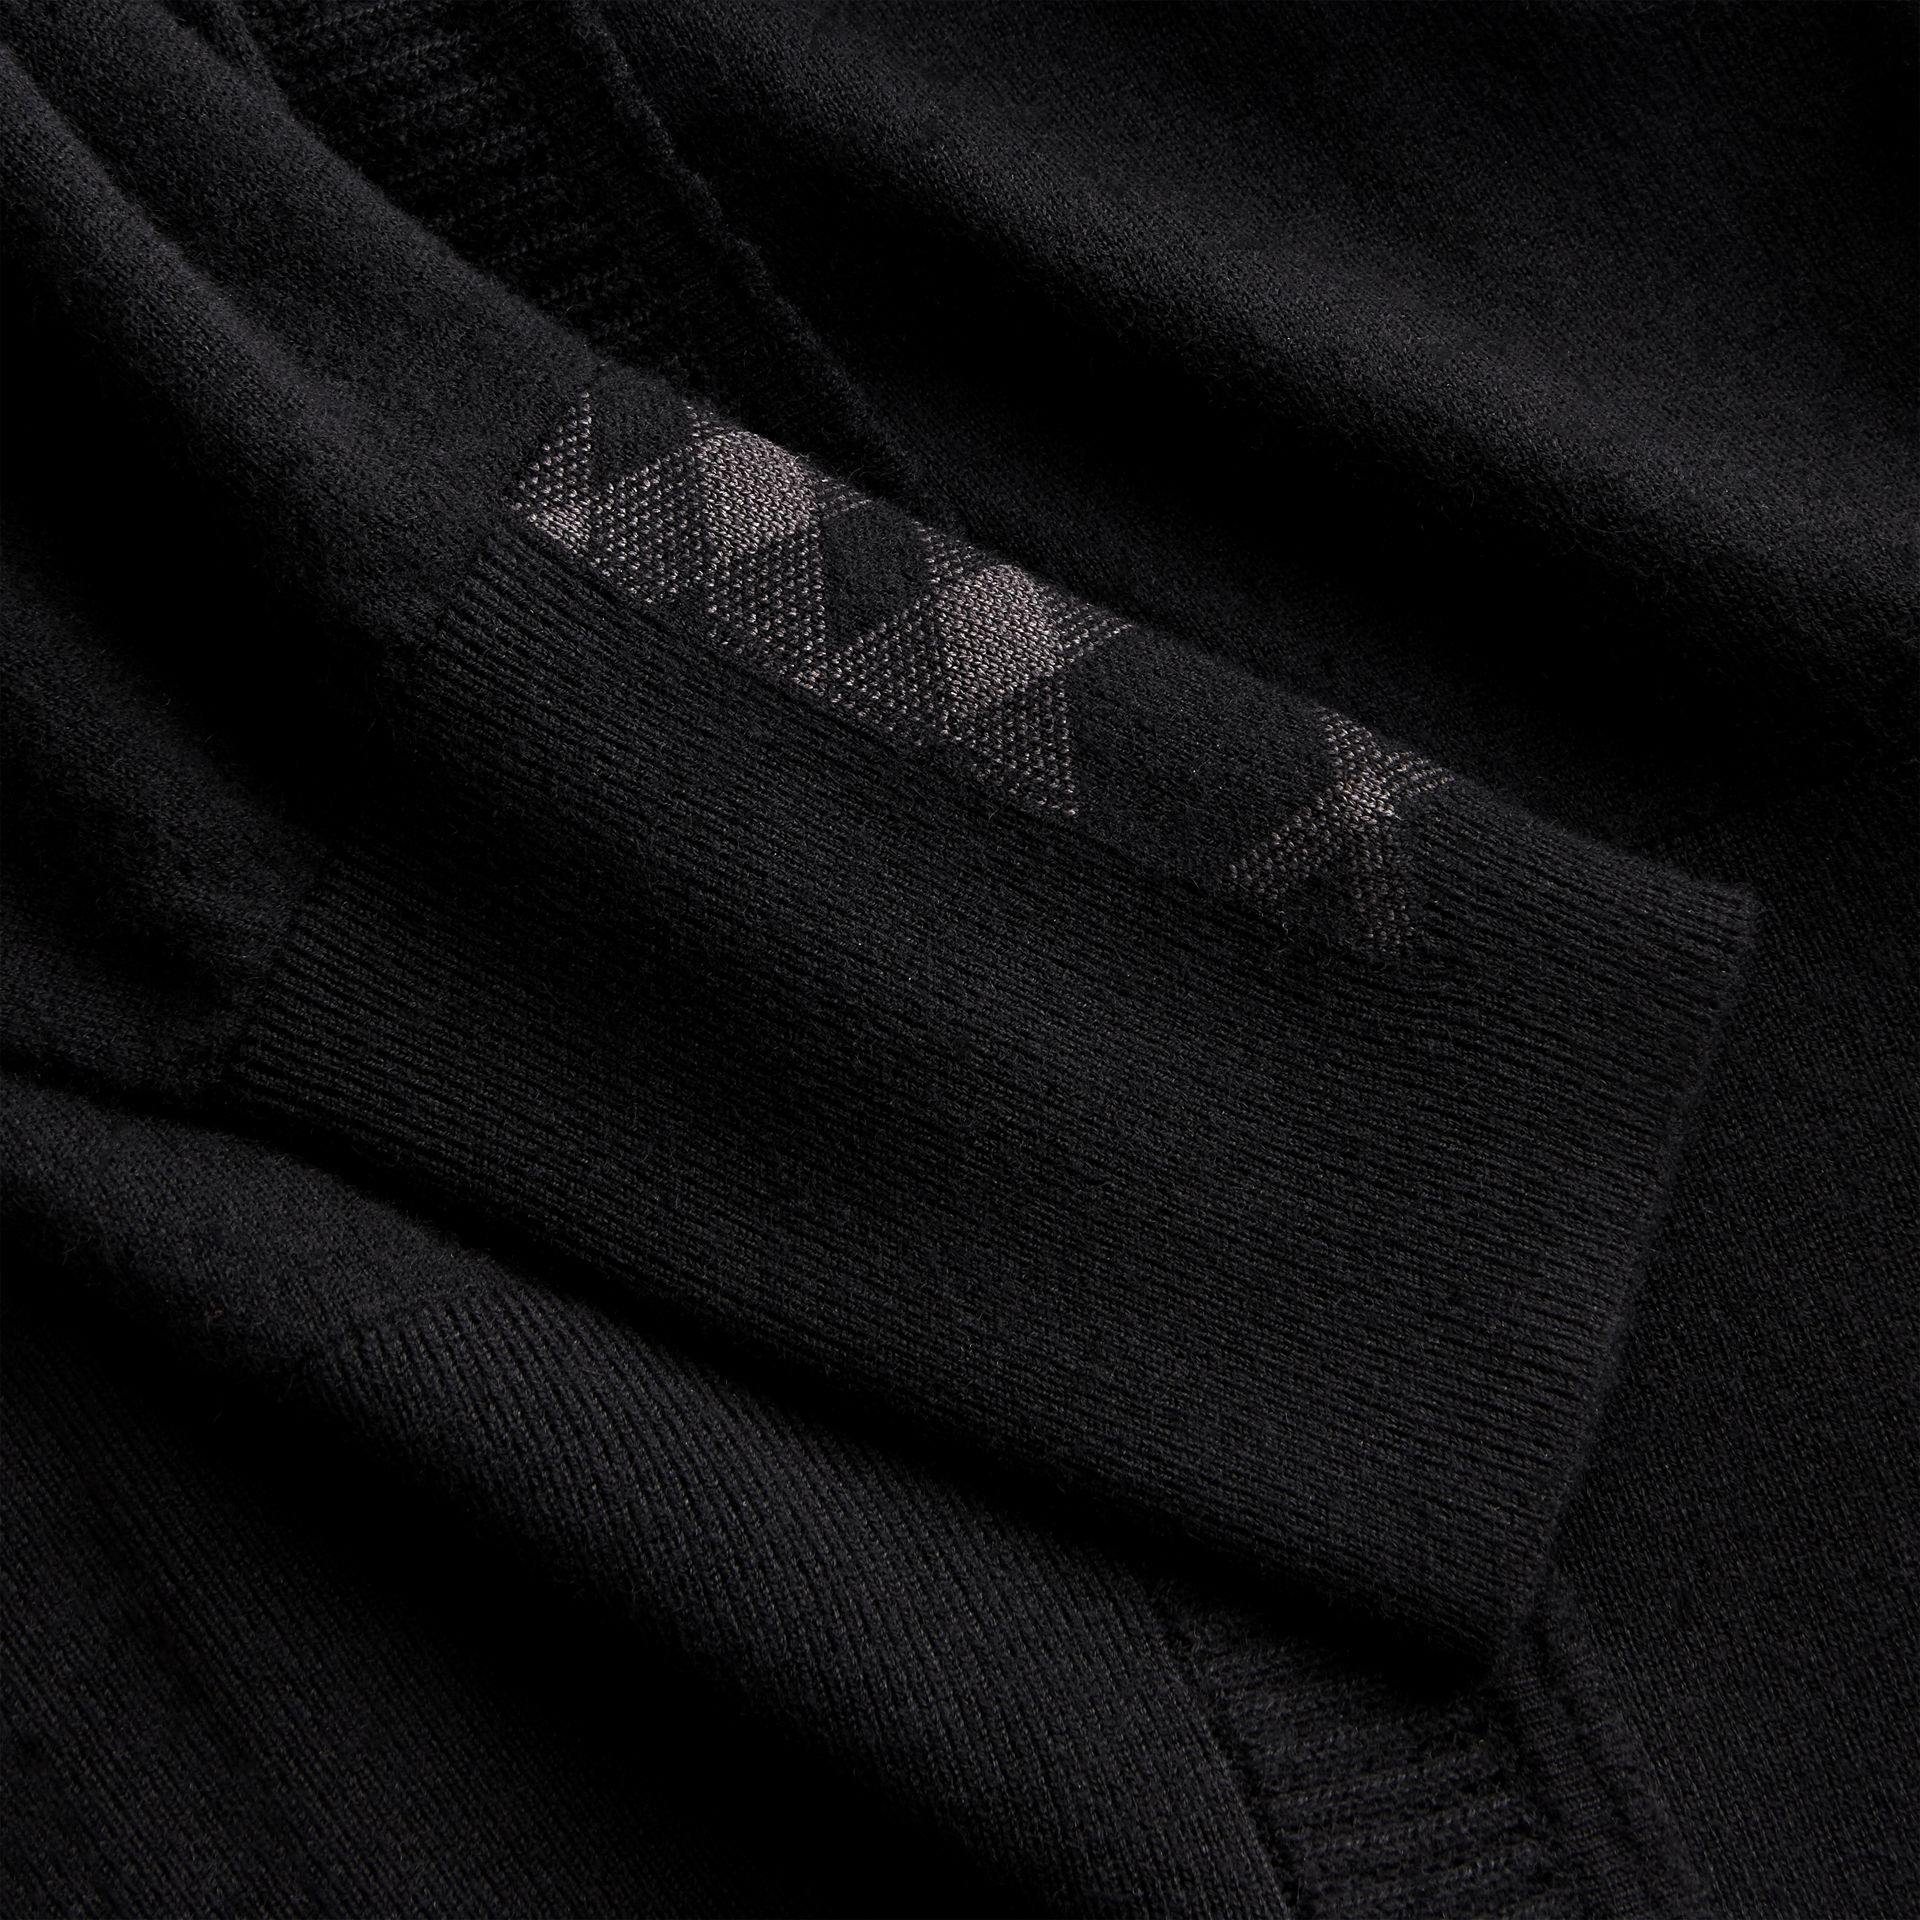 Open-knit Detail Cashmere Cardigan in Black - Women | Burberry - gallery image 2